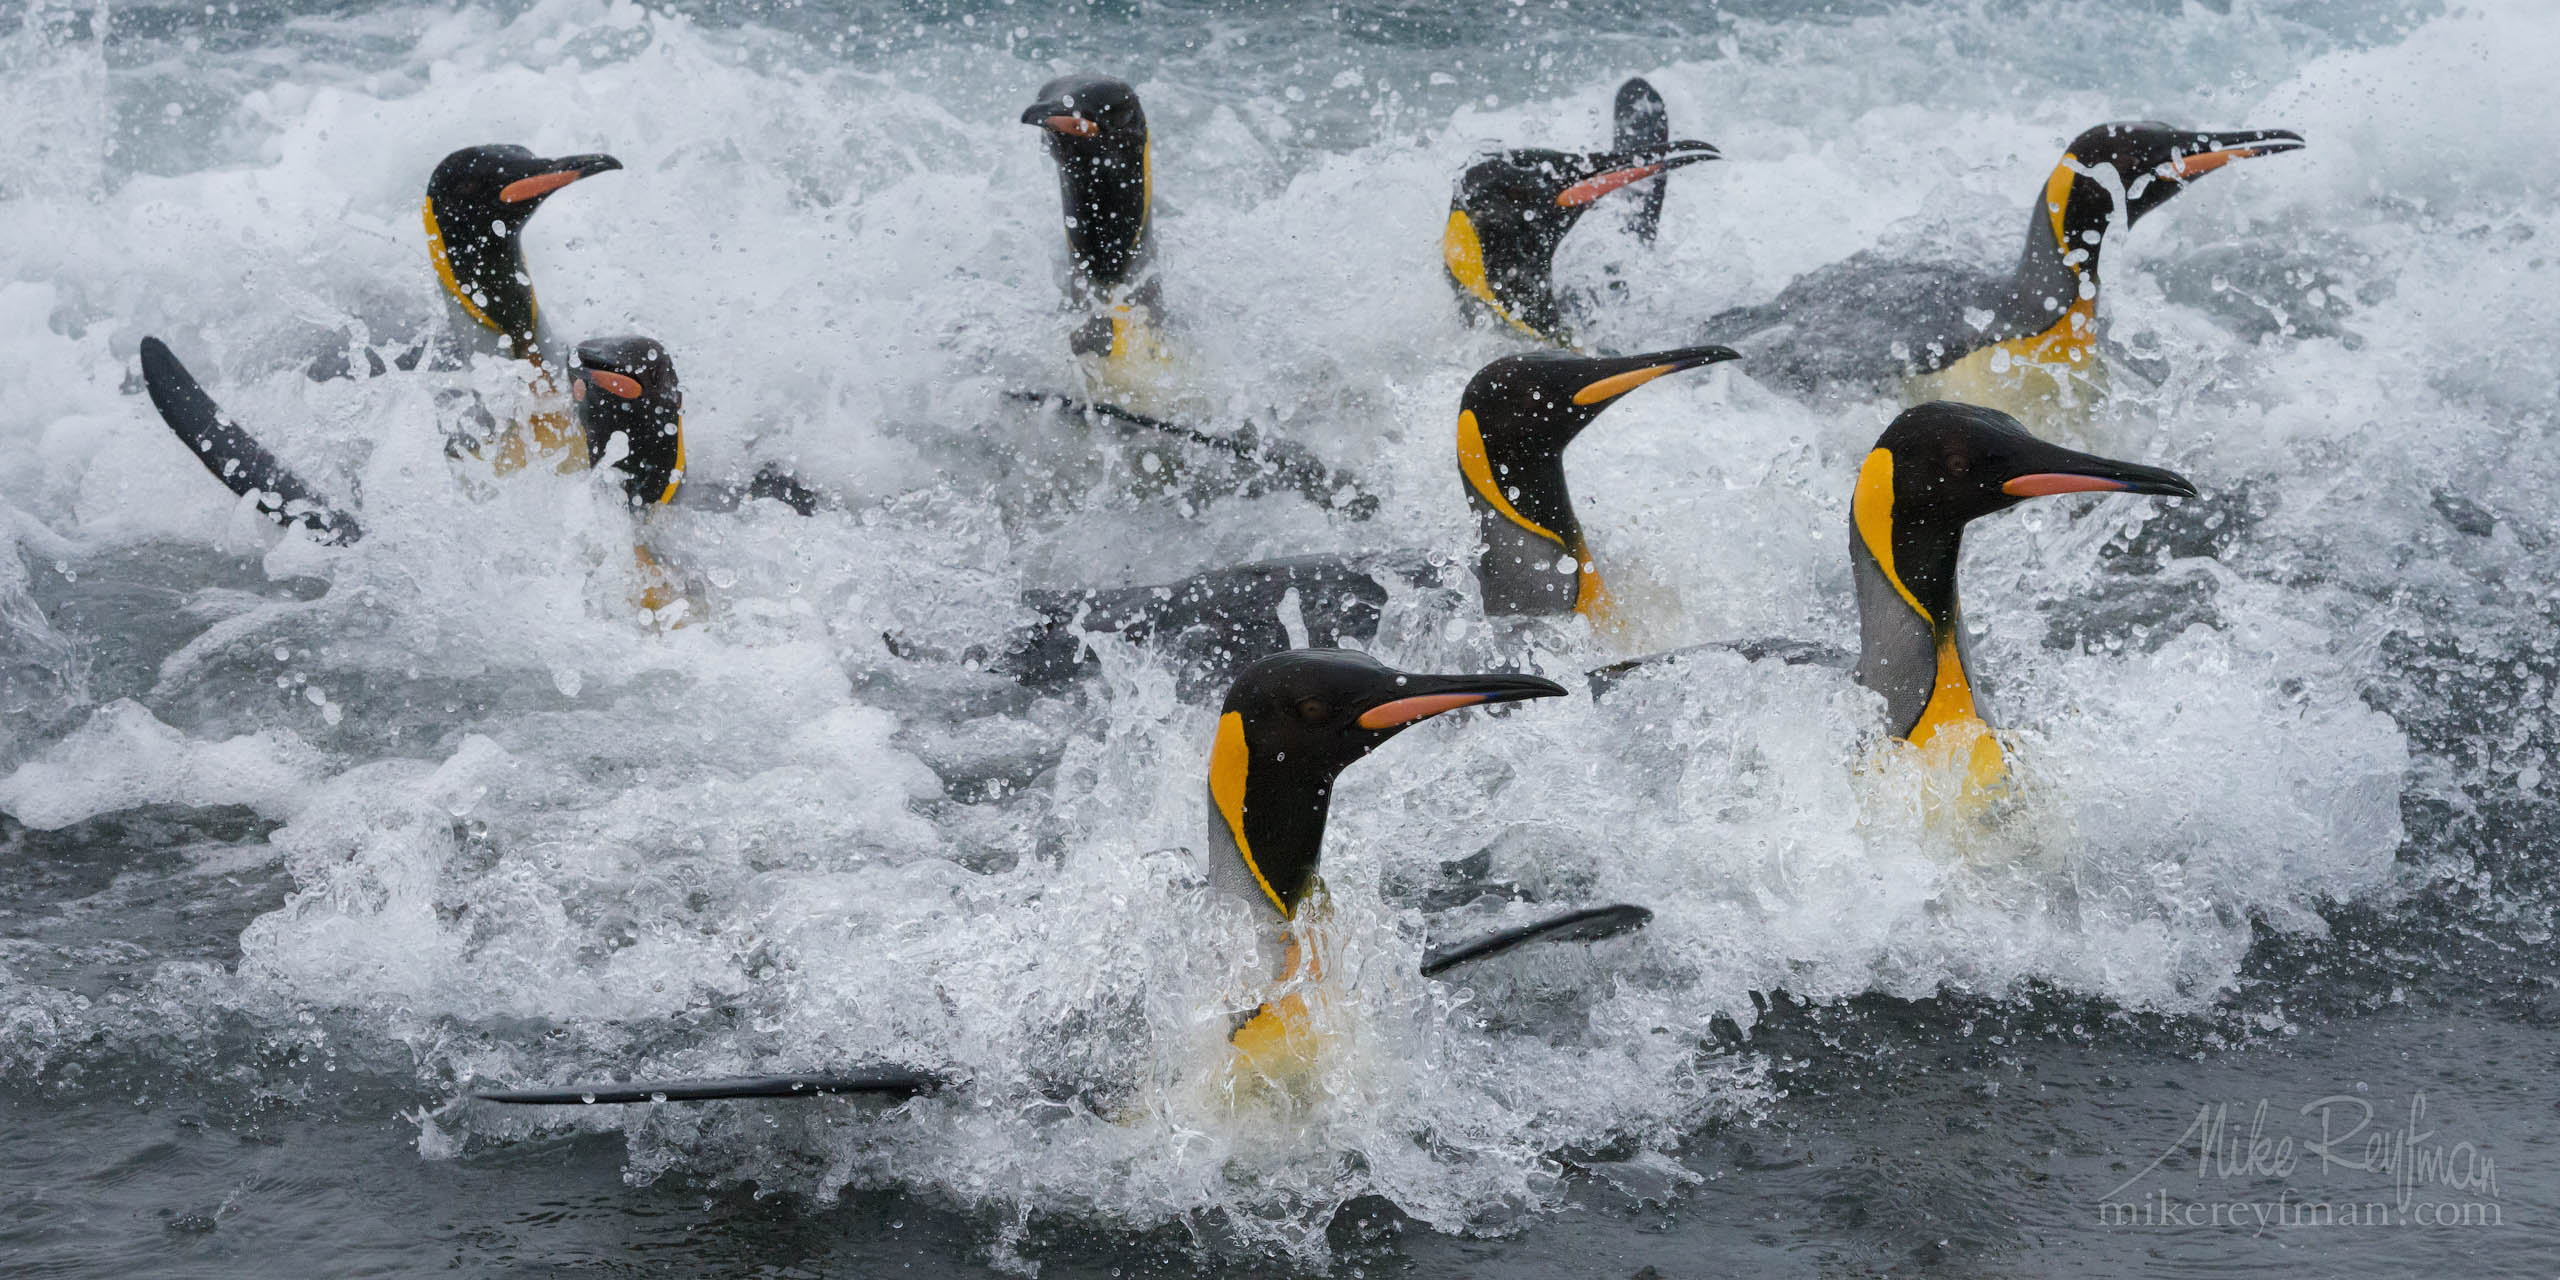 King Penguin (Aptenodytes patagonicus) coming ashore after foraging at sea. Salisbury Plain, South Georgia Island, South Atlantic P12MRD8E1951 - Selected panoramic images with 2:1 aspect ratio - Mike Reyfman Photography